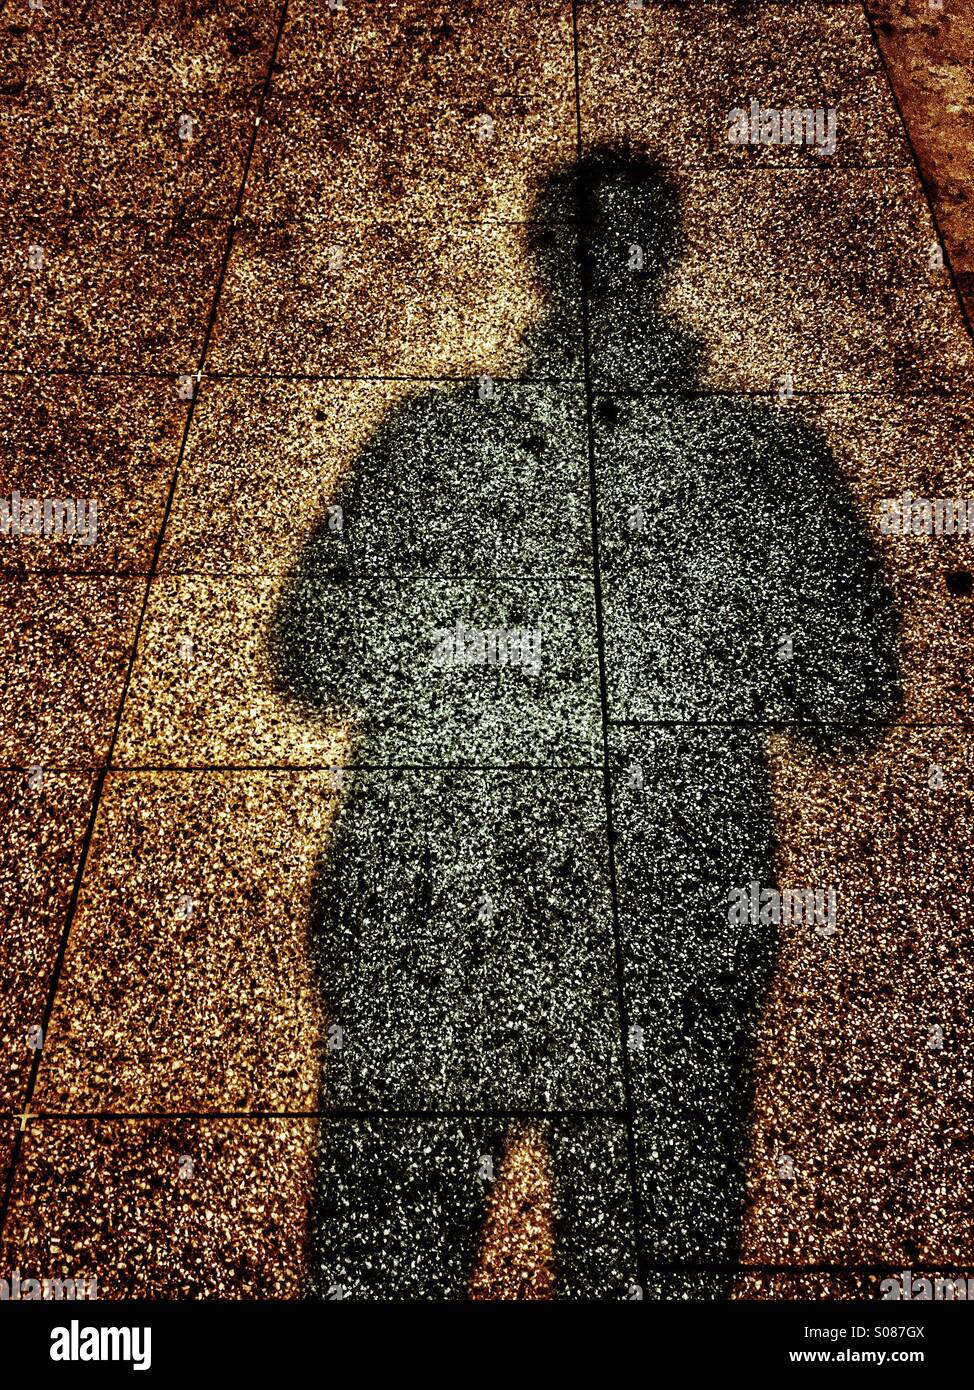 Shadow of a man on the pavement - Stock Image